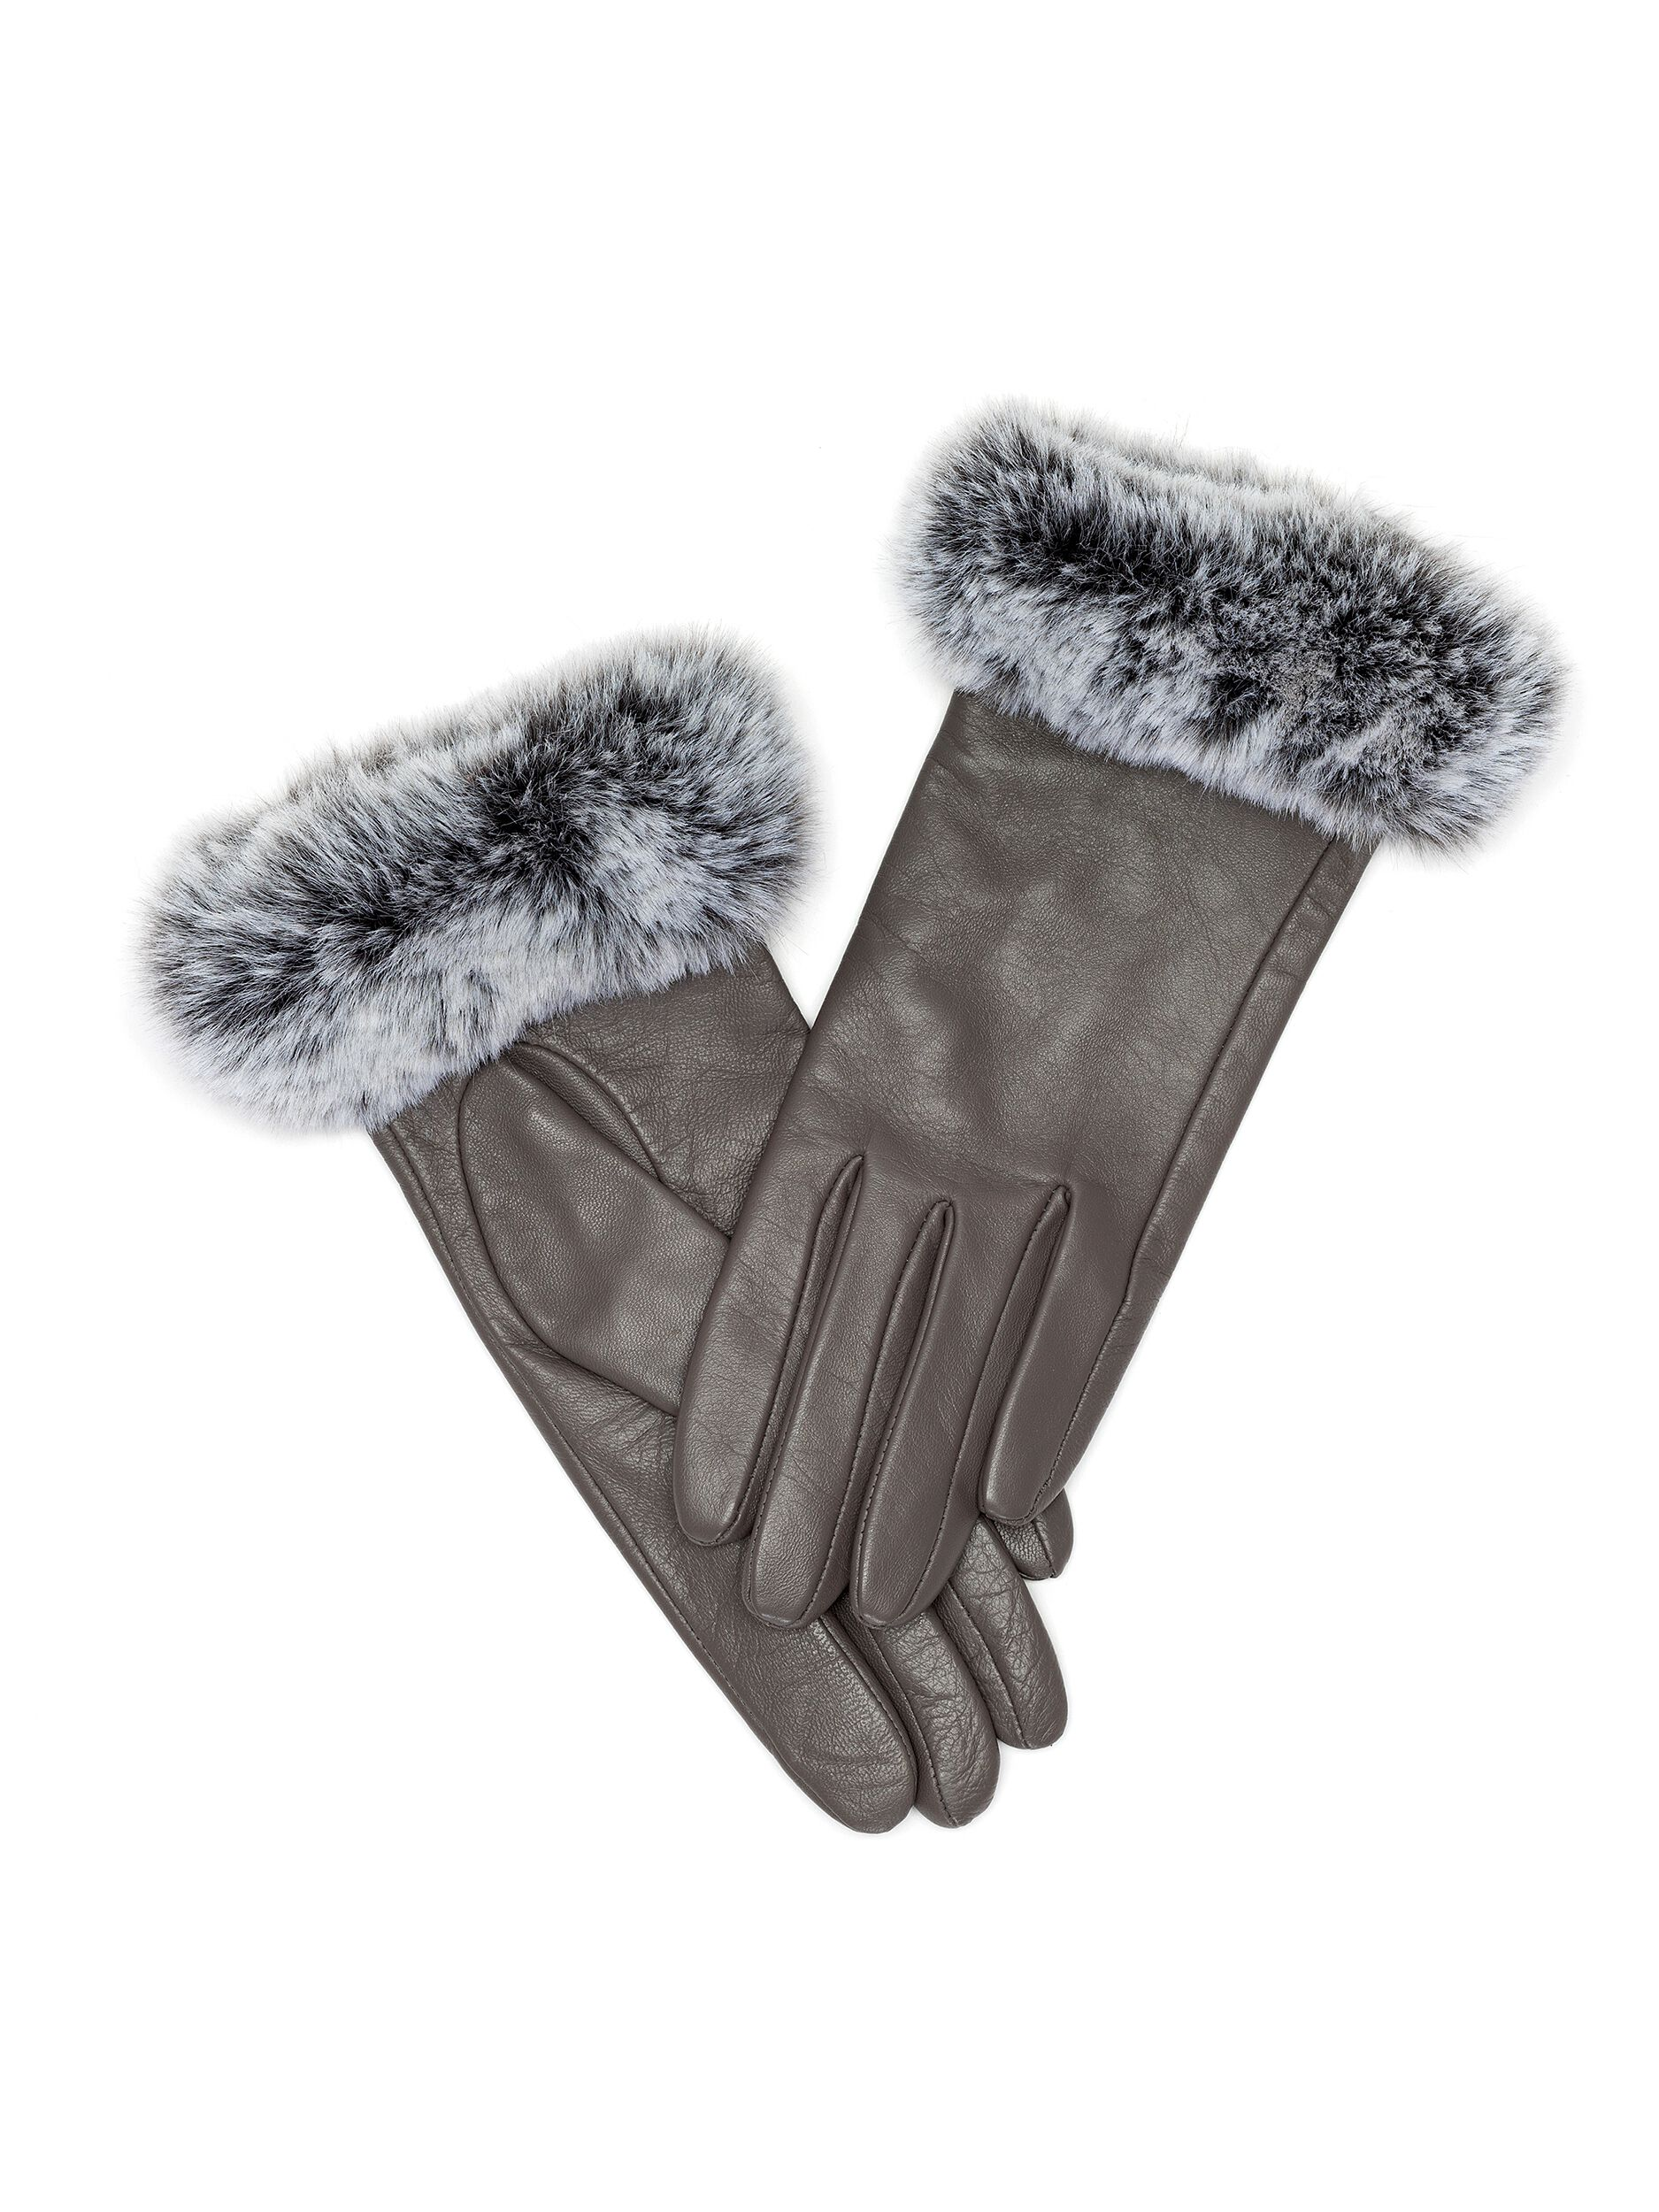 Russian Moonlight Gloves